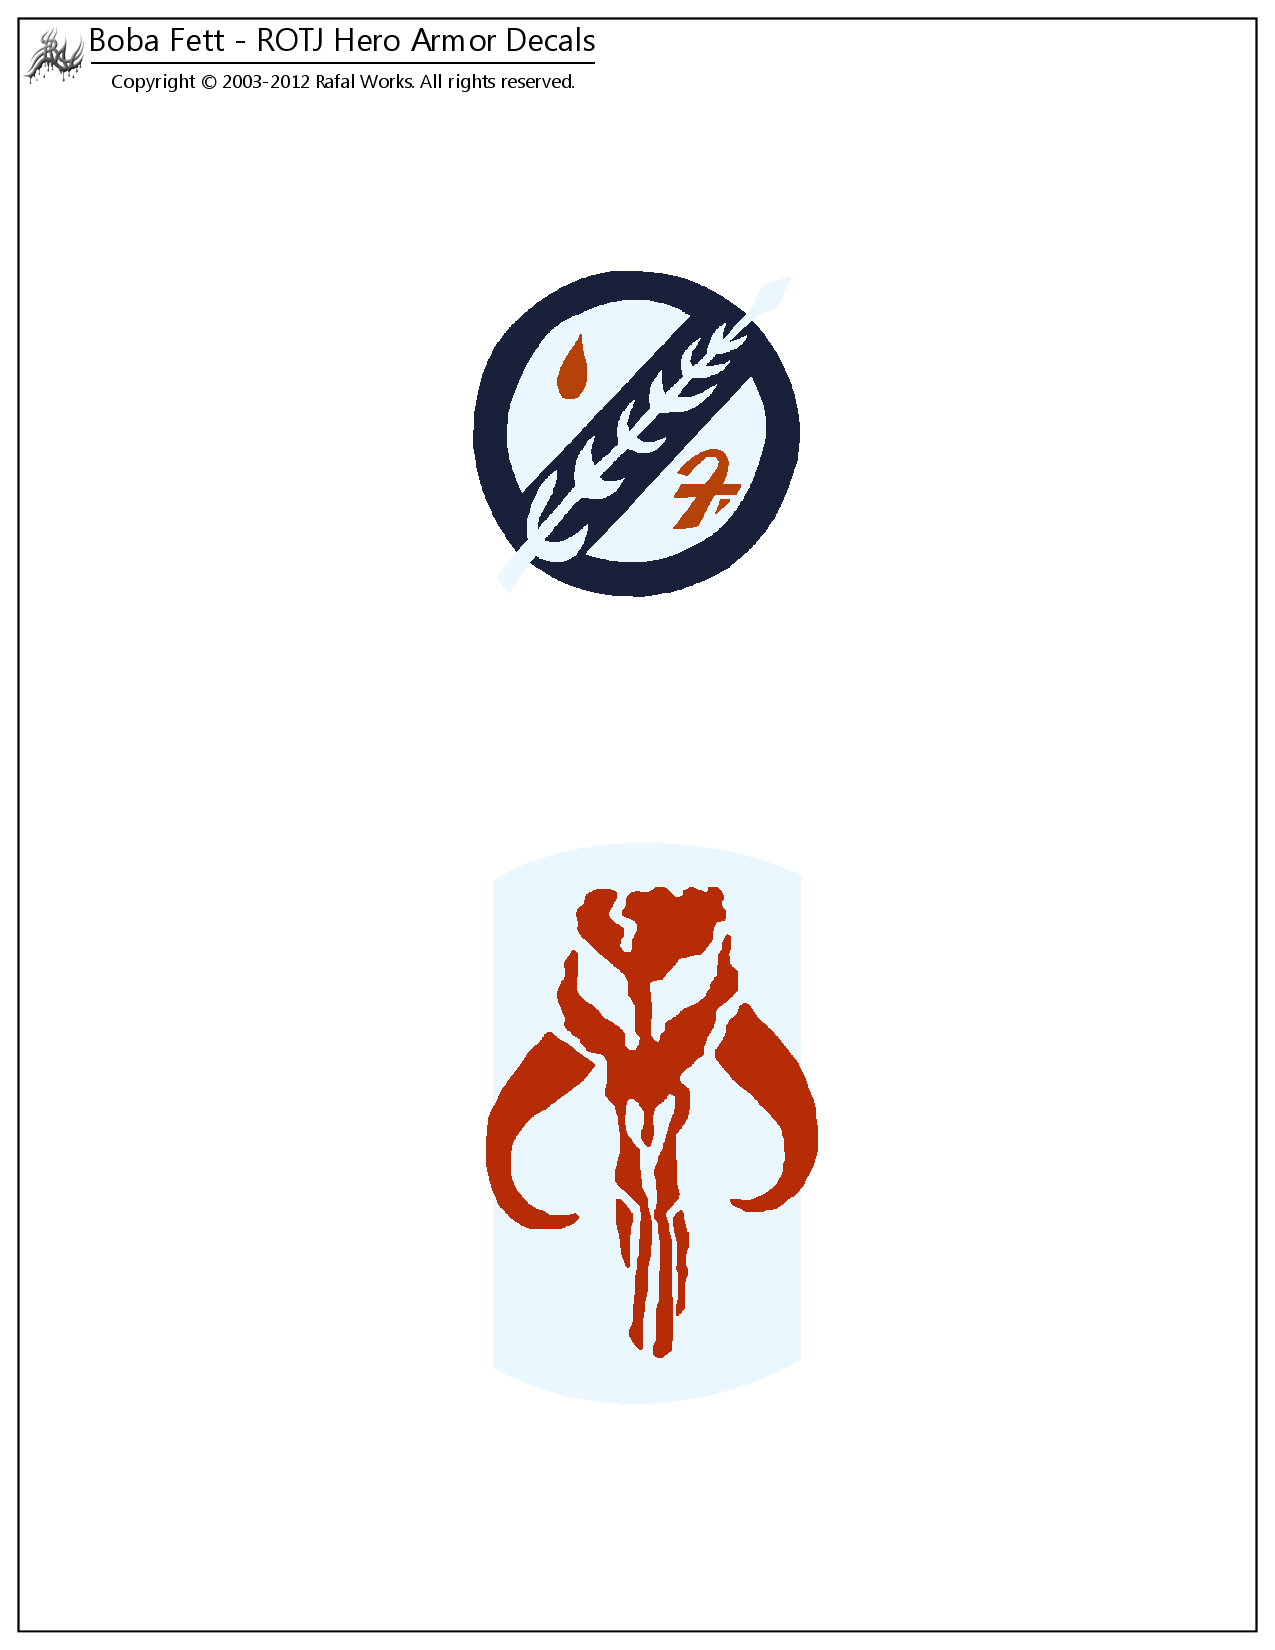 ROTJ Armor Decals LTR.png